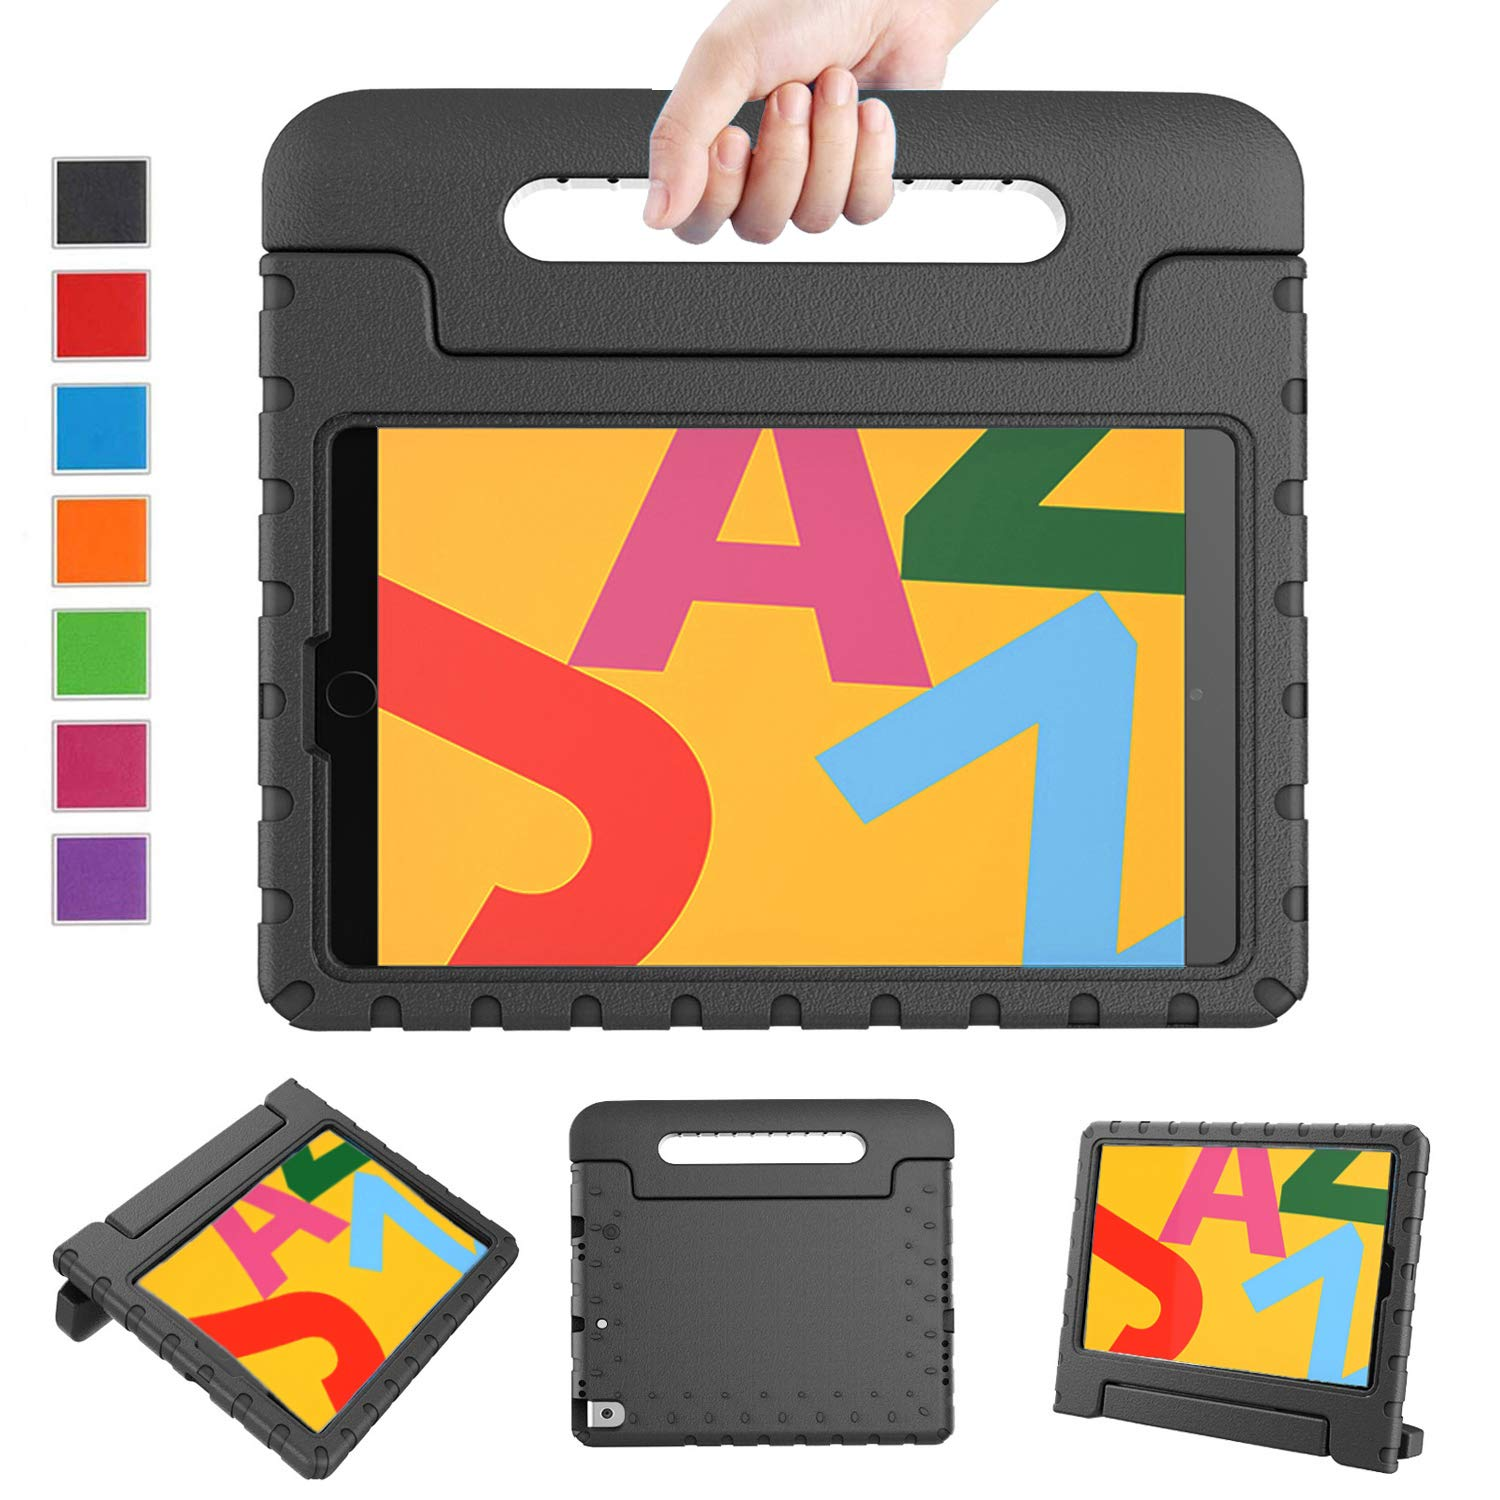 LTROP Case for iPad 10.2 2019, iPad 7th Generation Case for Kids - Light Weight Shock Proof Handle Stand Kids Case for Apple iPad 7 10.2-inch 2019 Latest Model and Air 3, Black